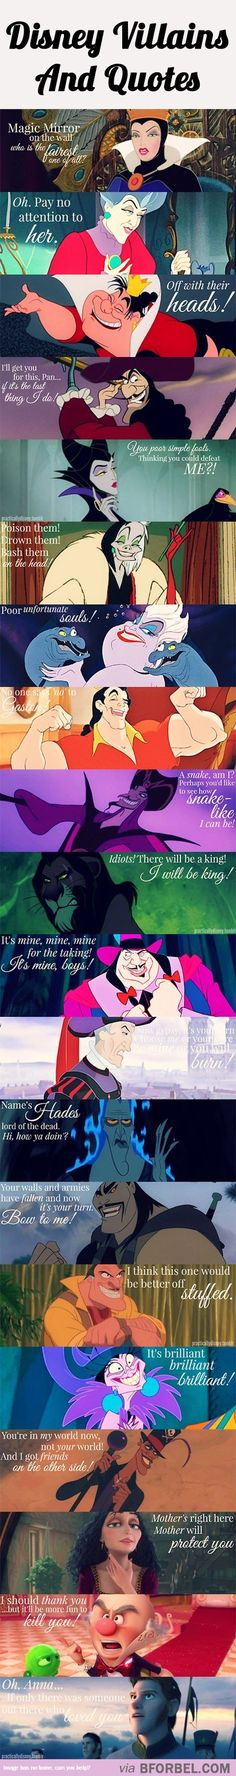 20 Disney Villains And Their Infamous Quotes…